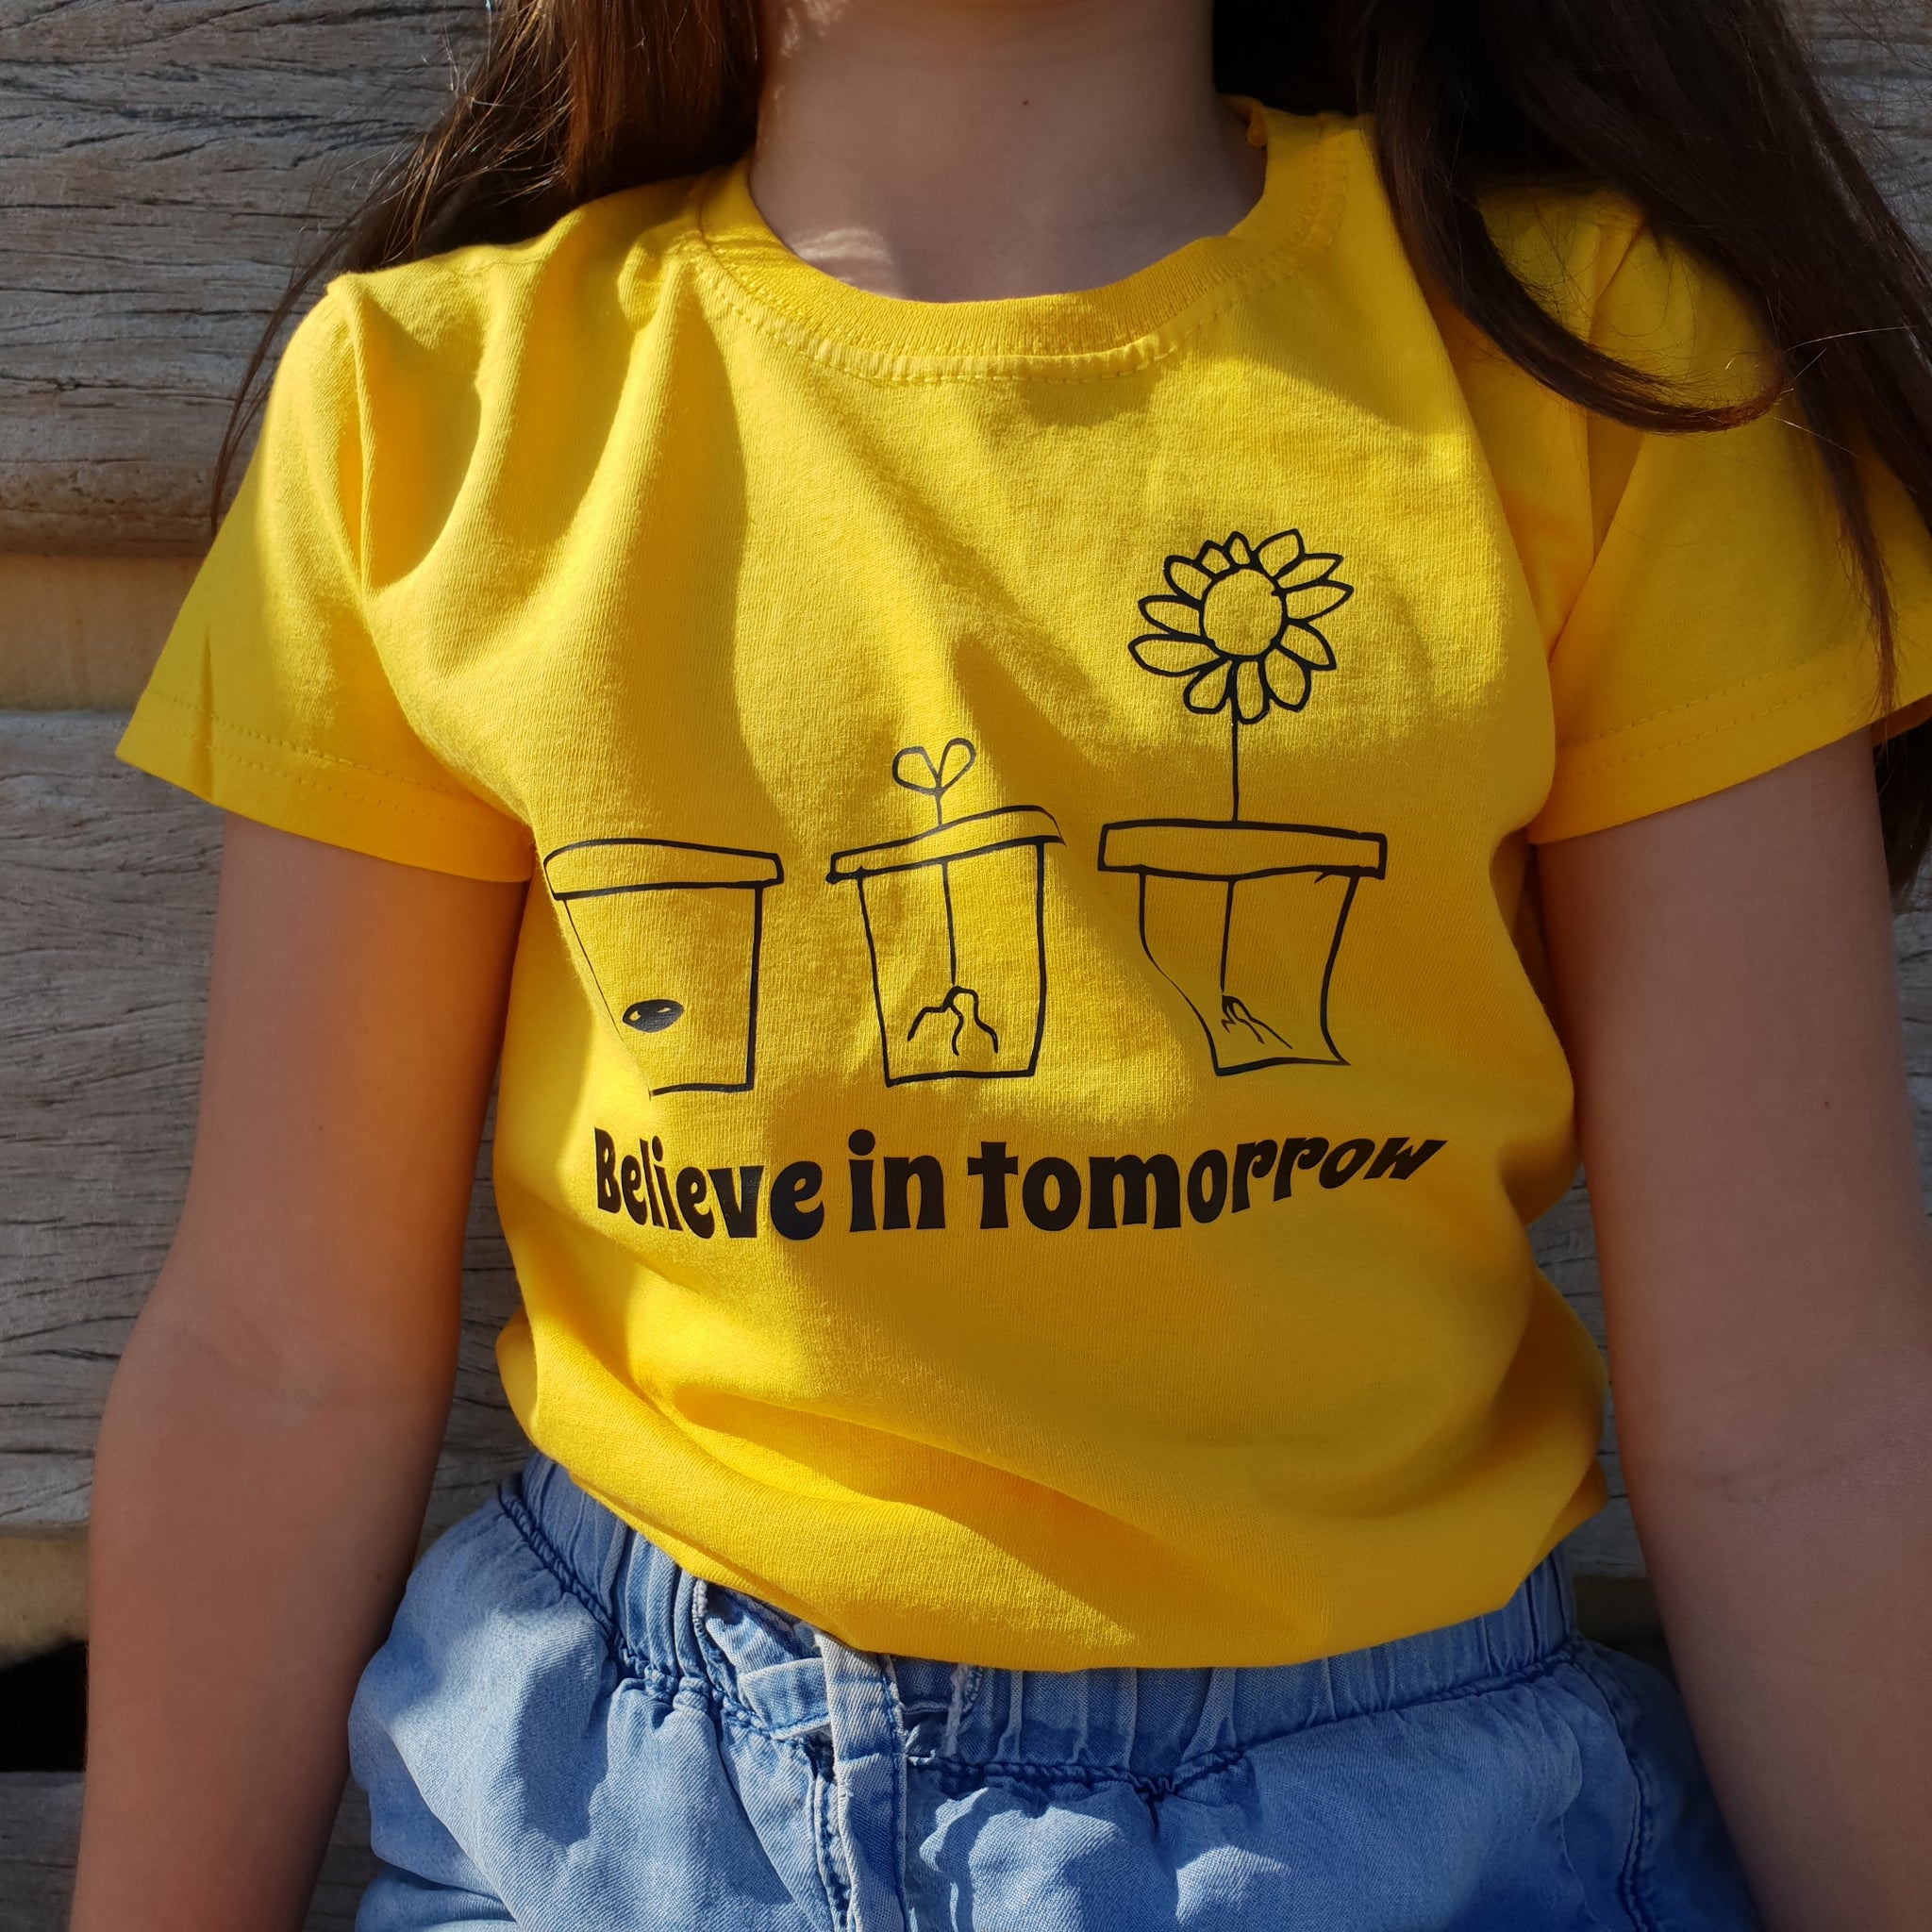 Believe in tomorrow Kids Tshirt